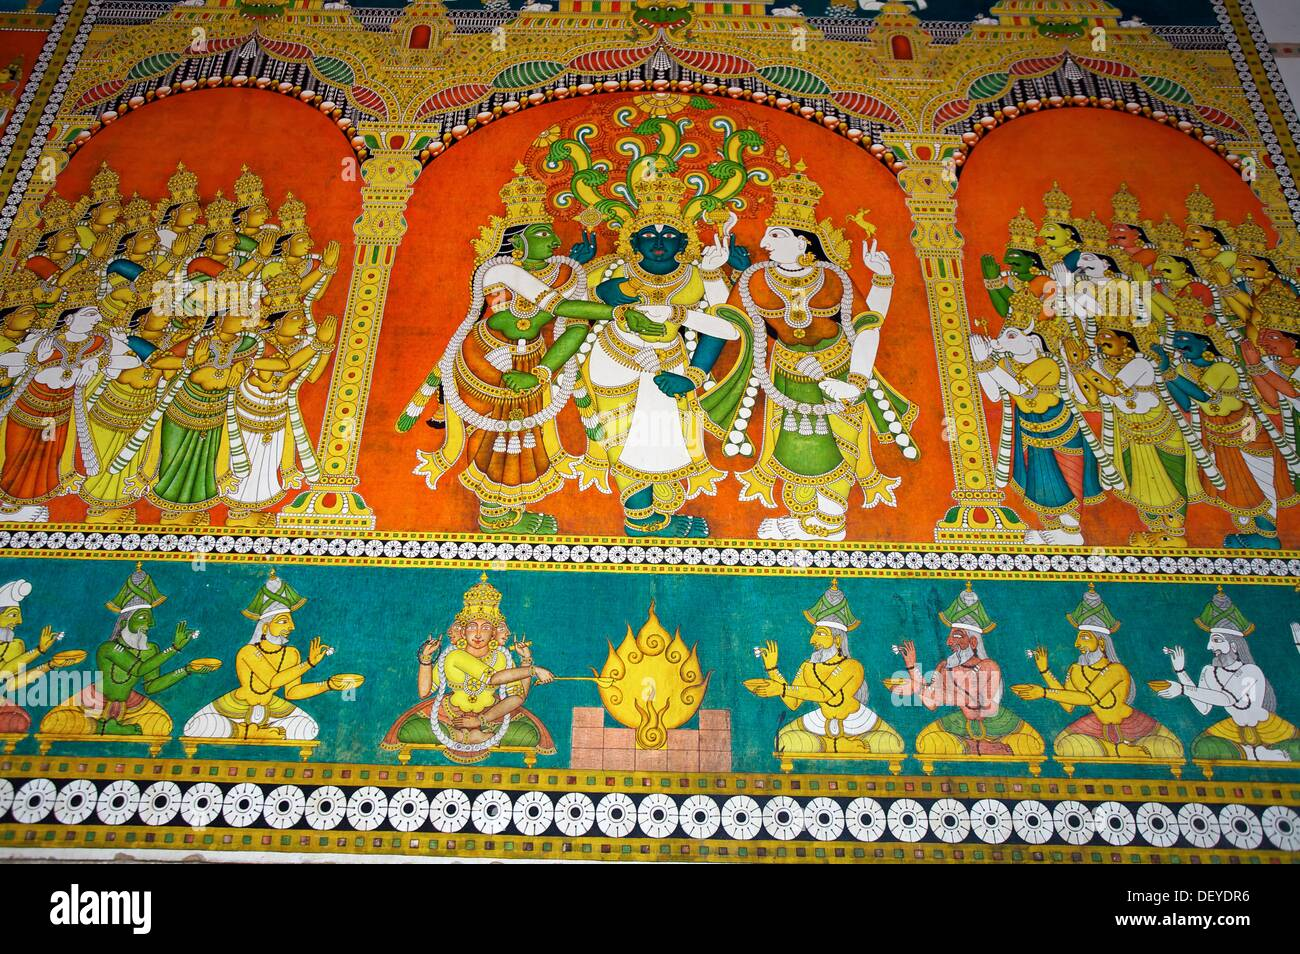 Meenakshi Temple Murals High Resolution Stock Photography and Images - Alamy